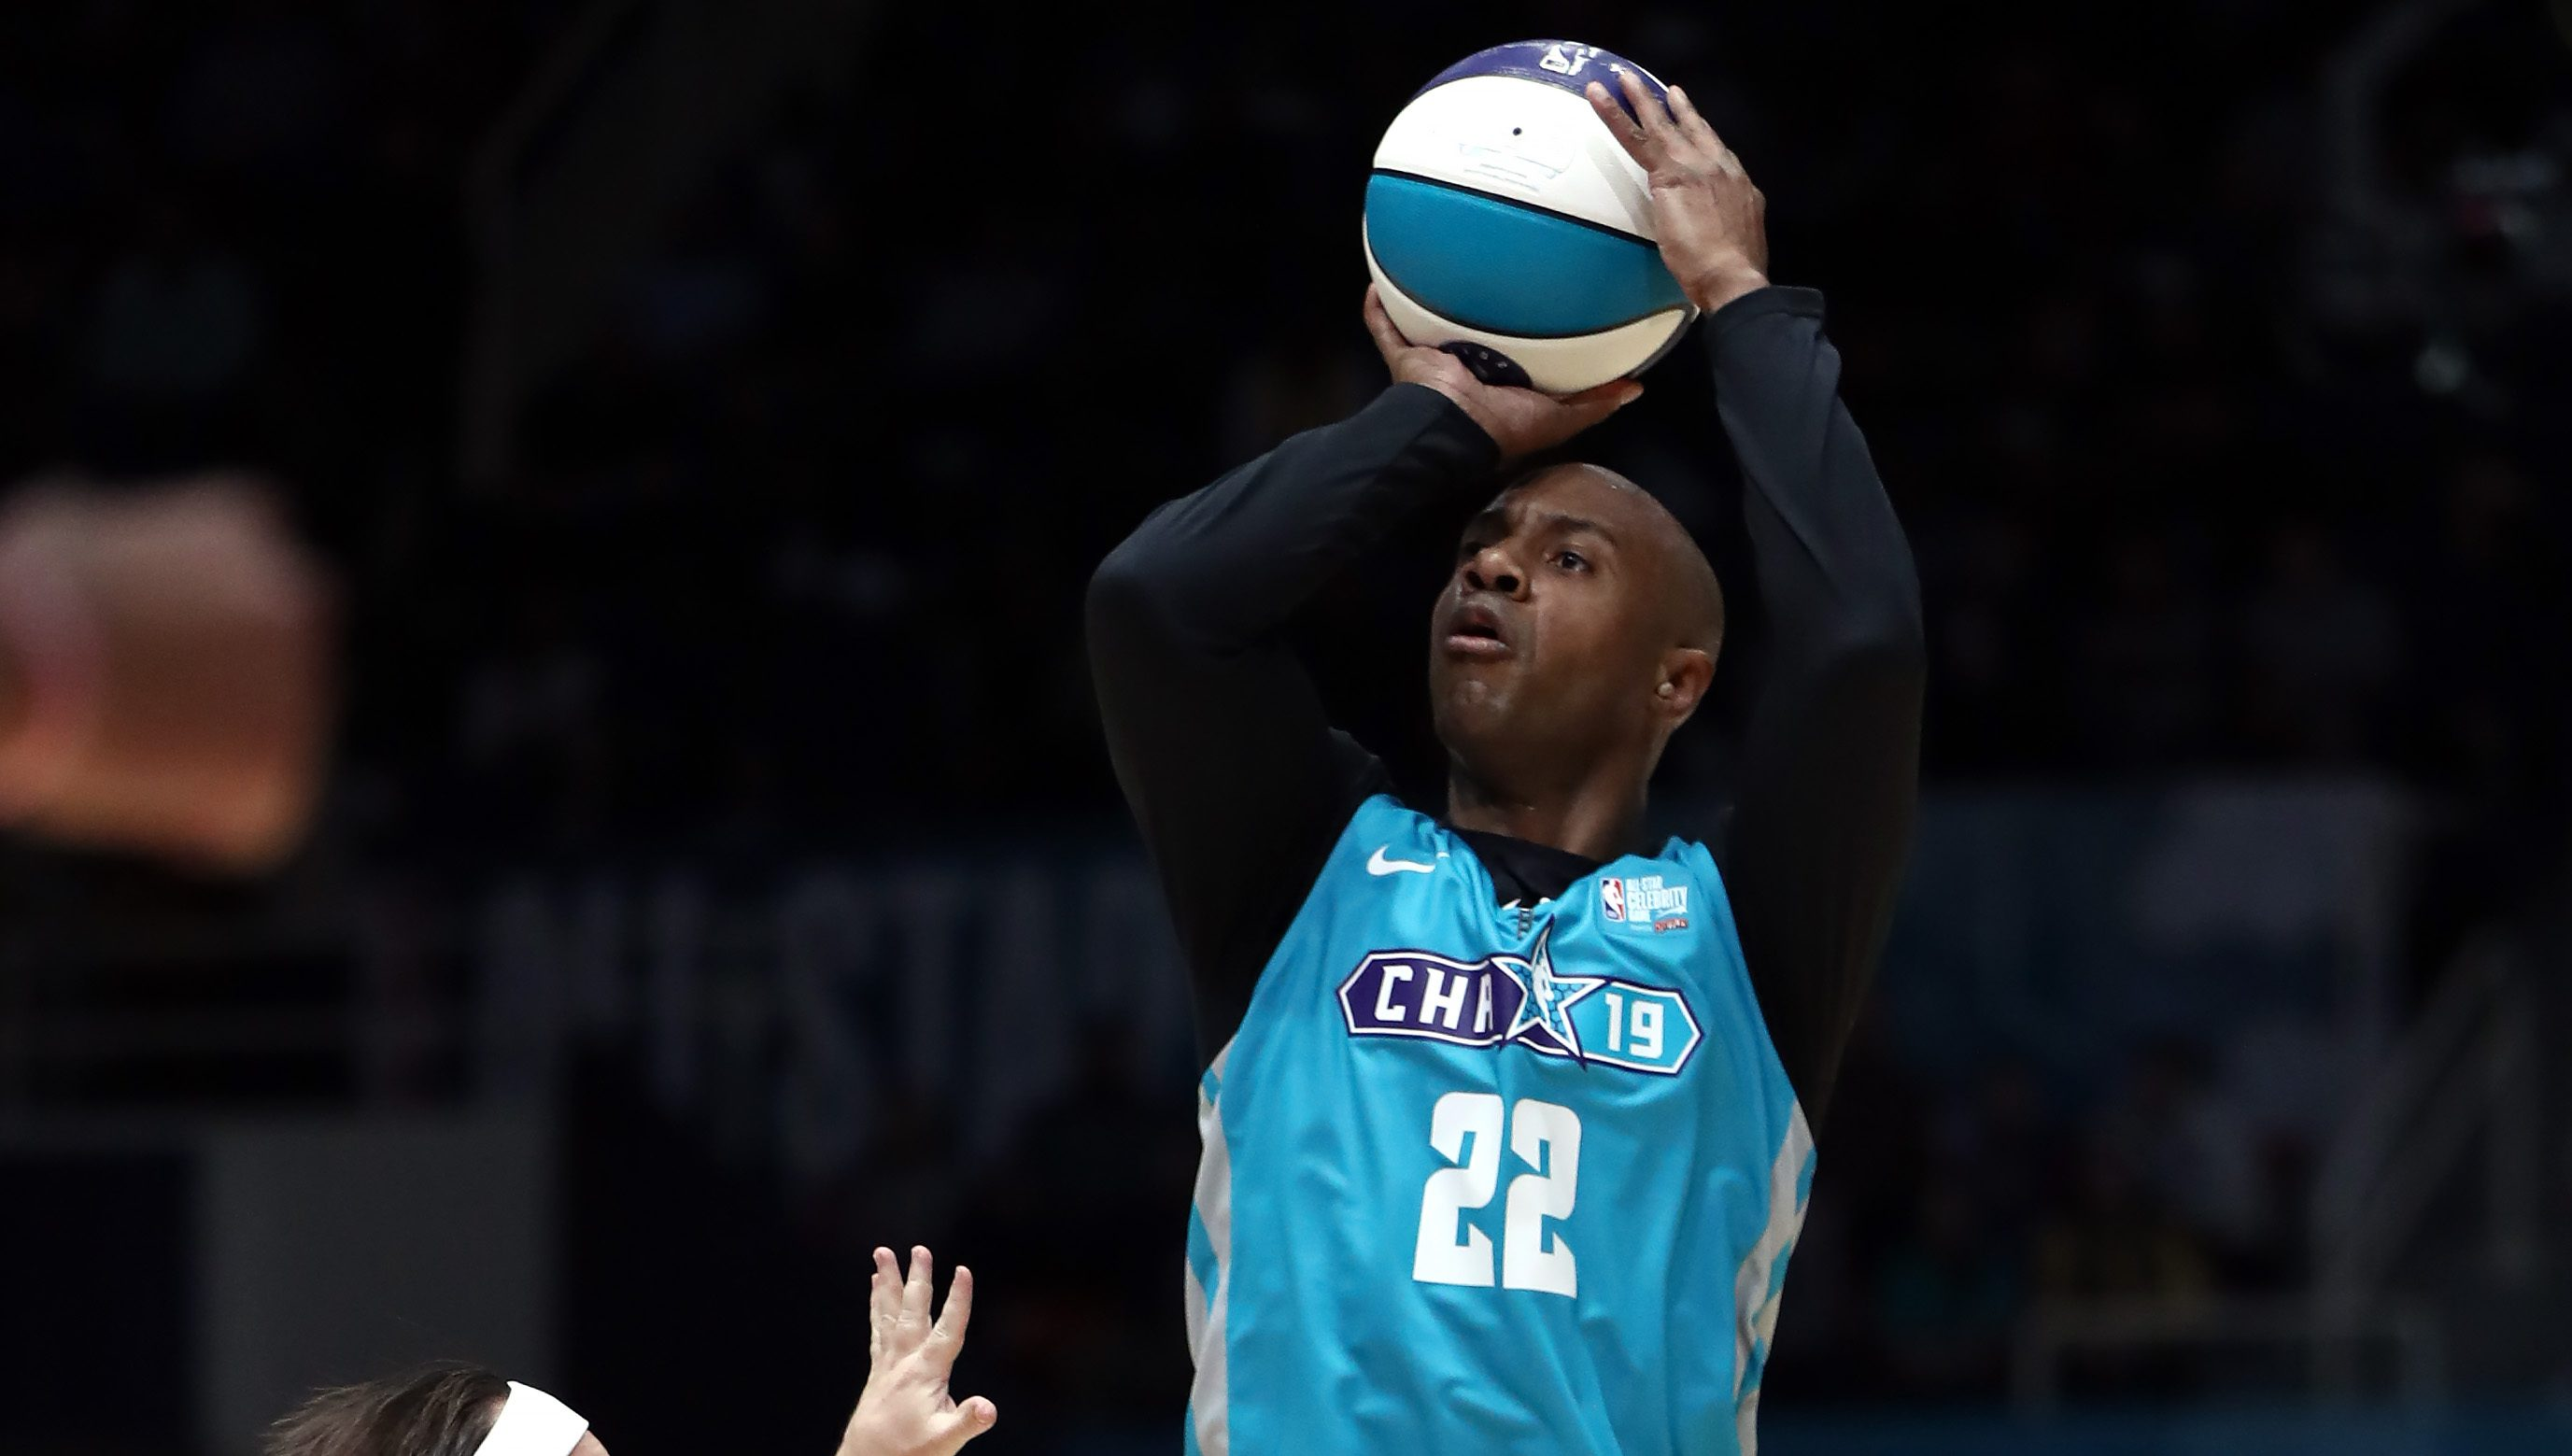 Jay Williams, in the 2019 All-Star Celebrity Game